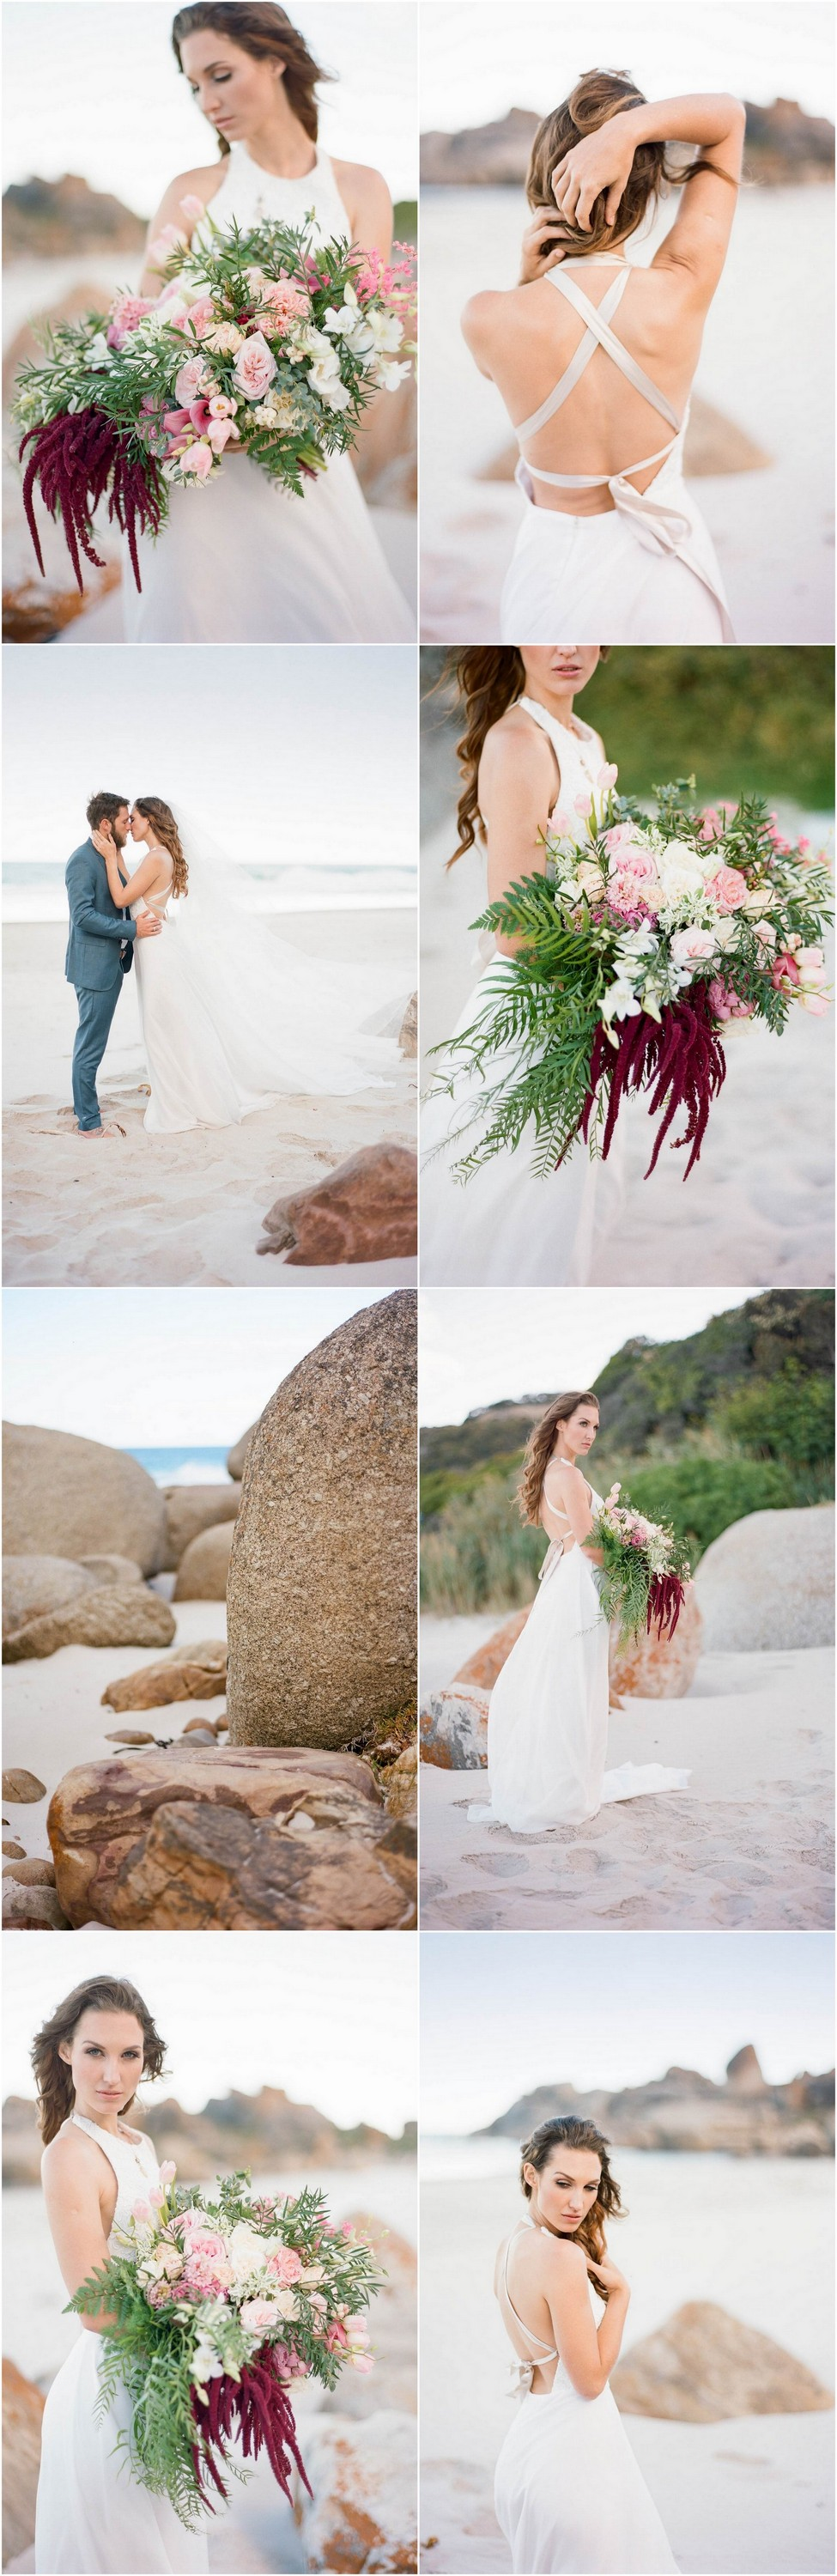 Romantic Cape Town Beach Bride 4